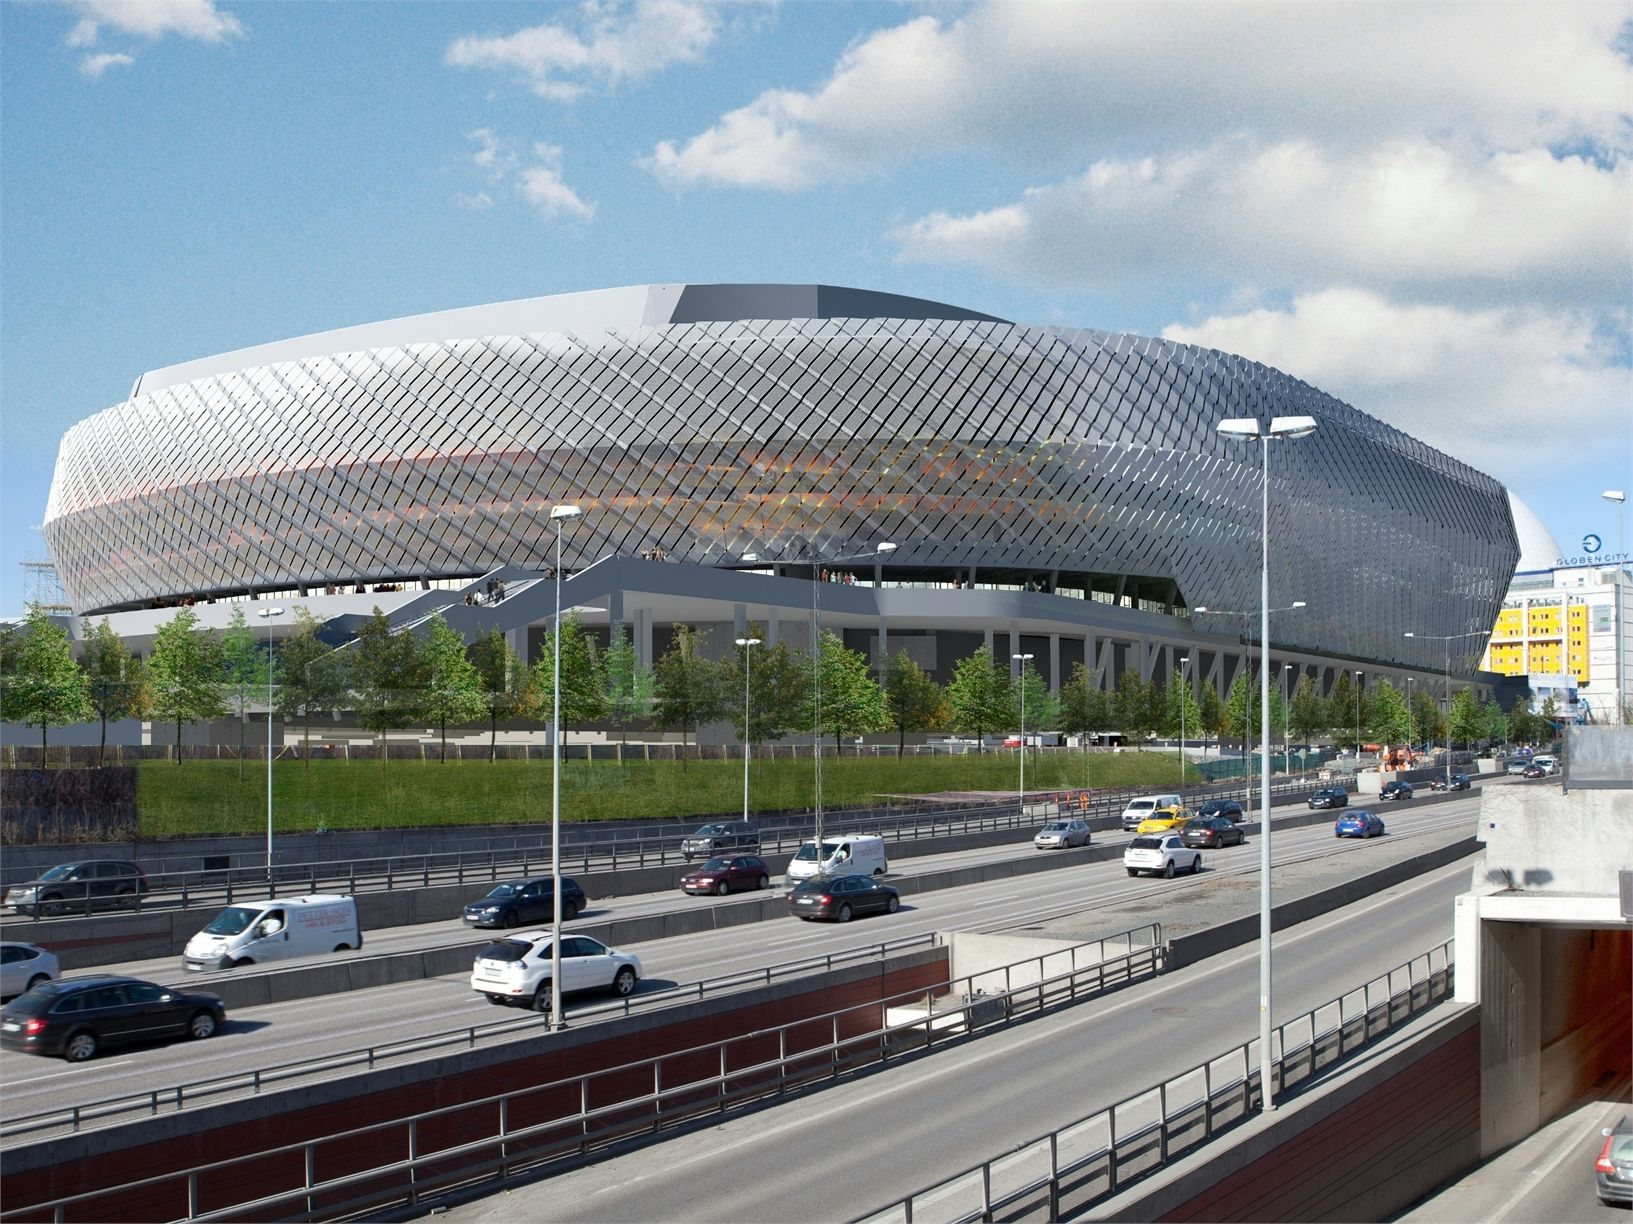 Dow Building Solutions per Tele2Arena